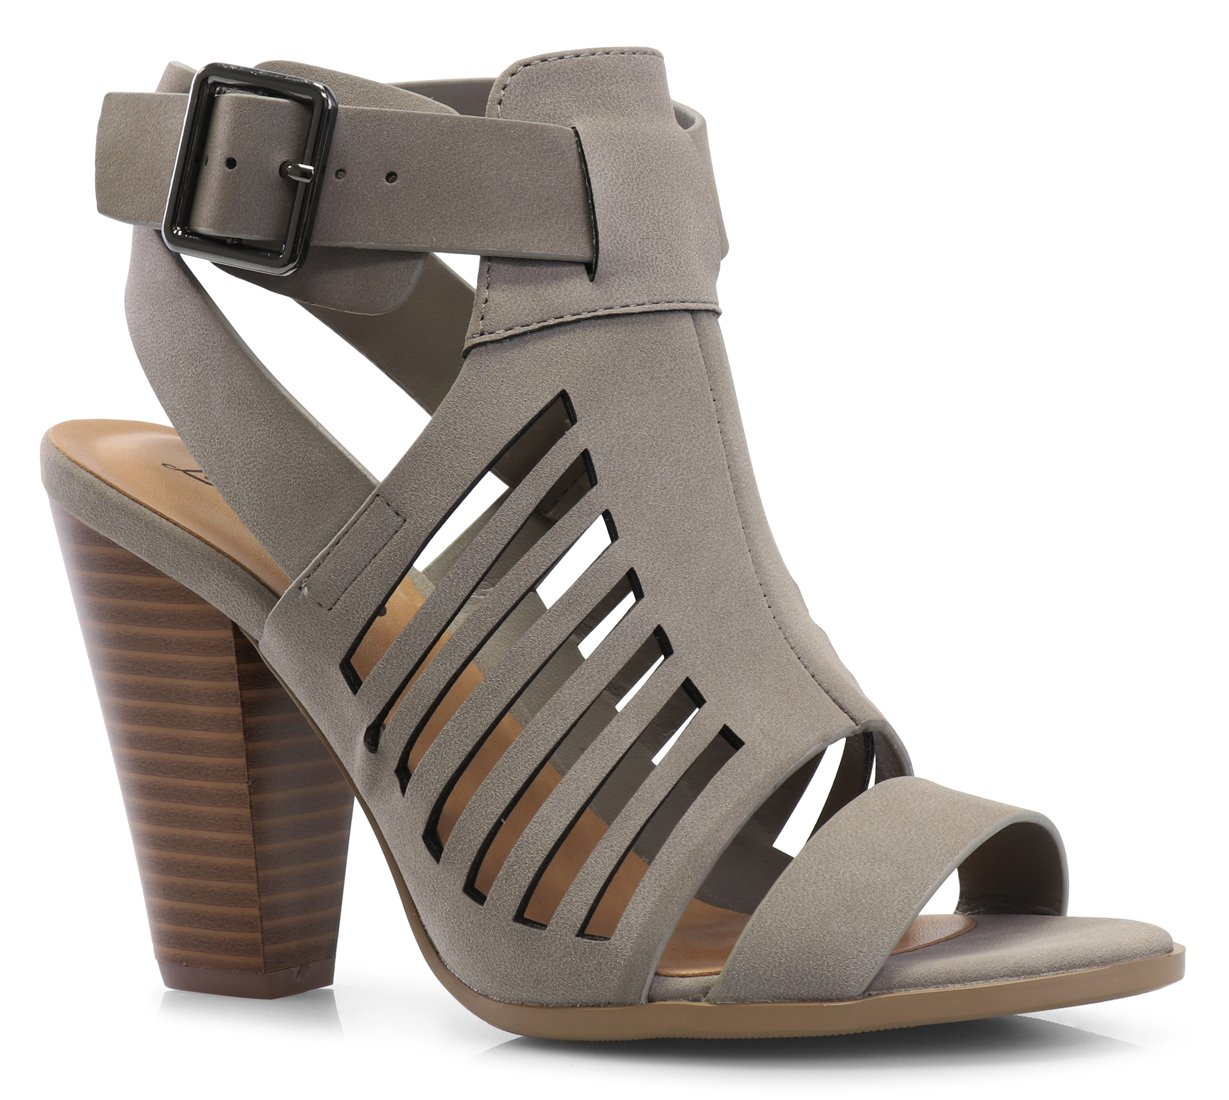 LUSTHAVE Women's Yvonne Laser Cut Sandal - Sexy Wood Stacked Heel - Strappy Open Toe Shoes Gray 9